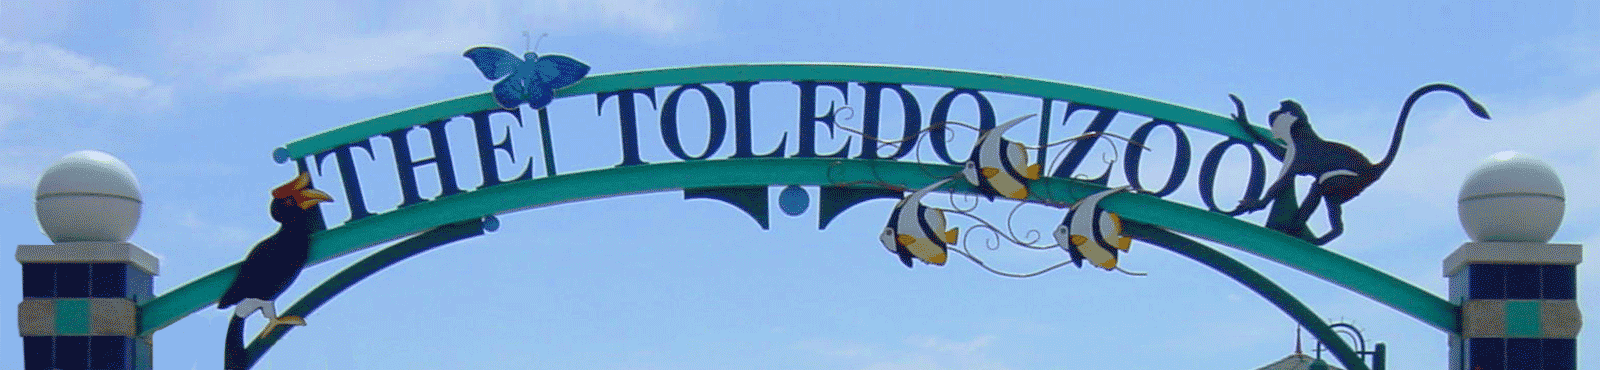 Image of the sign over the main entrance